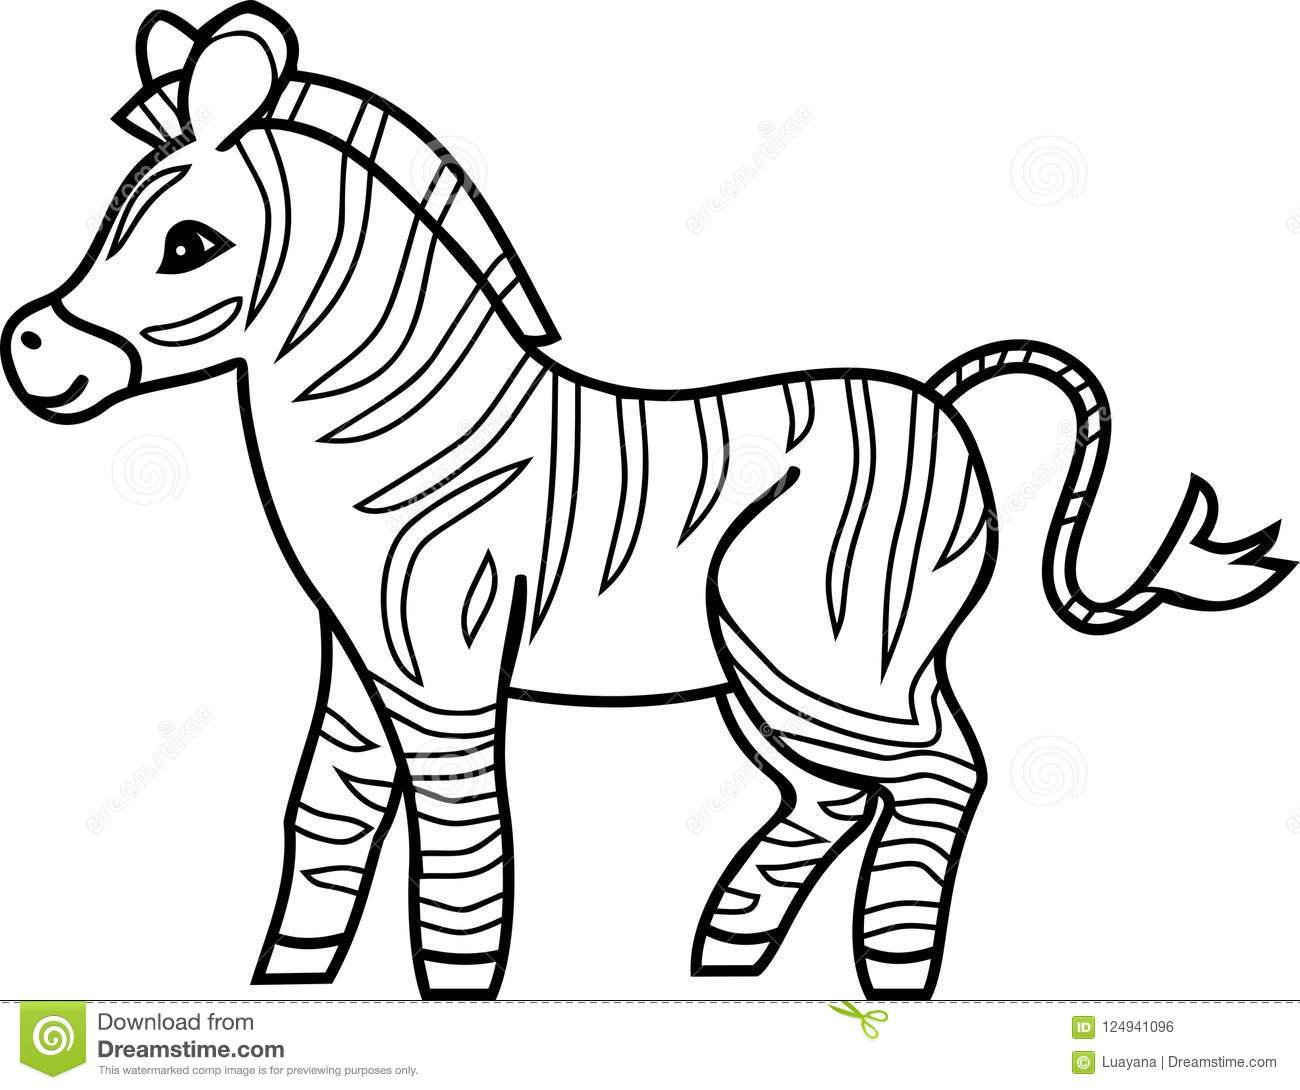 Striped Cartoon Zebra Coloring Page Stock Vector ...